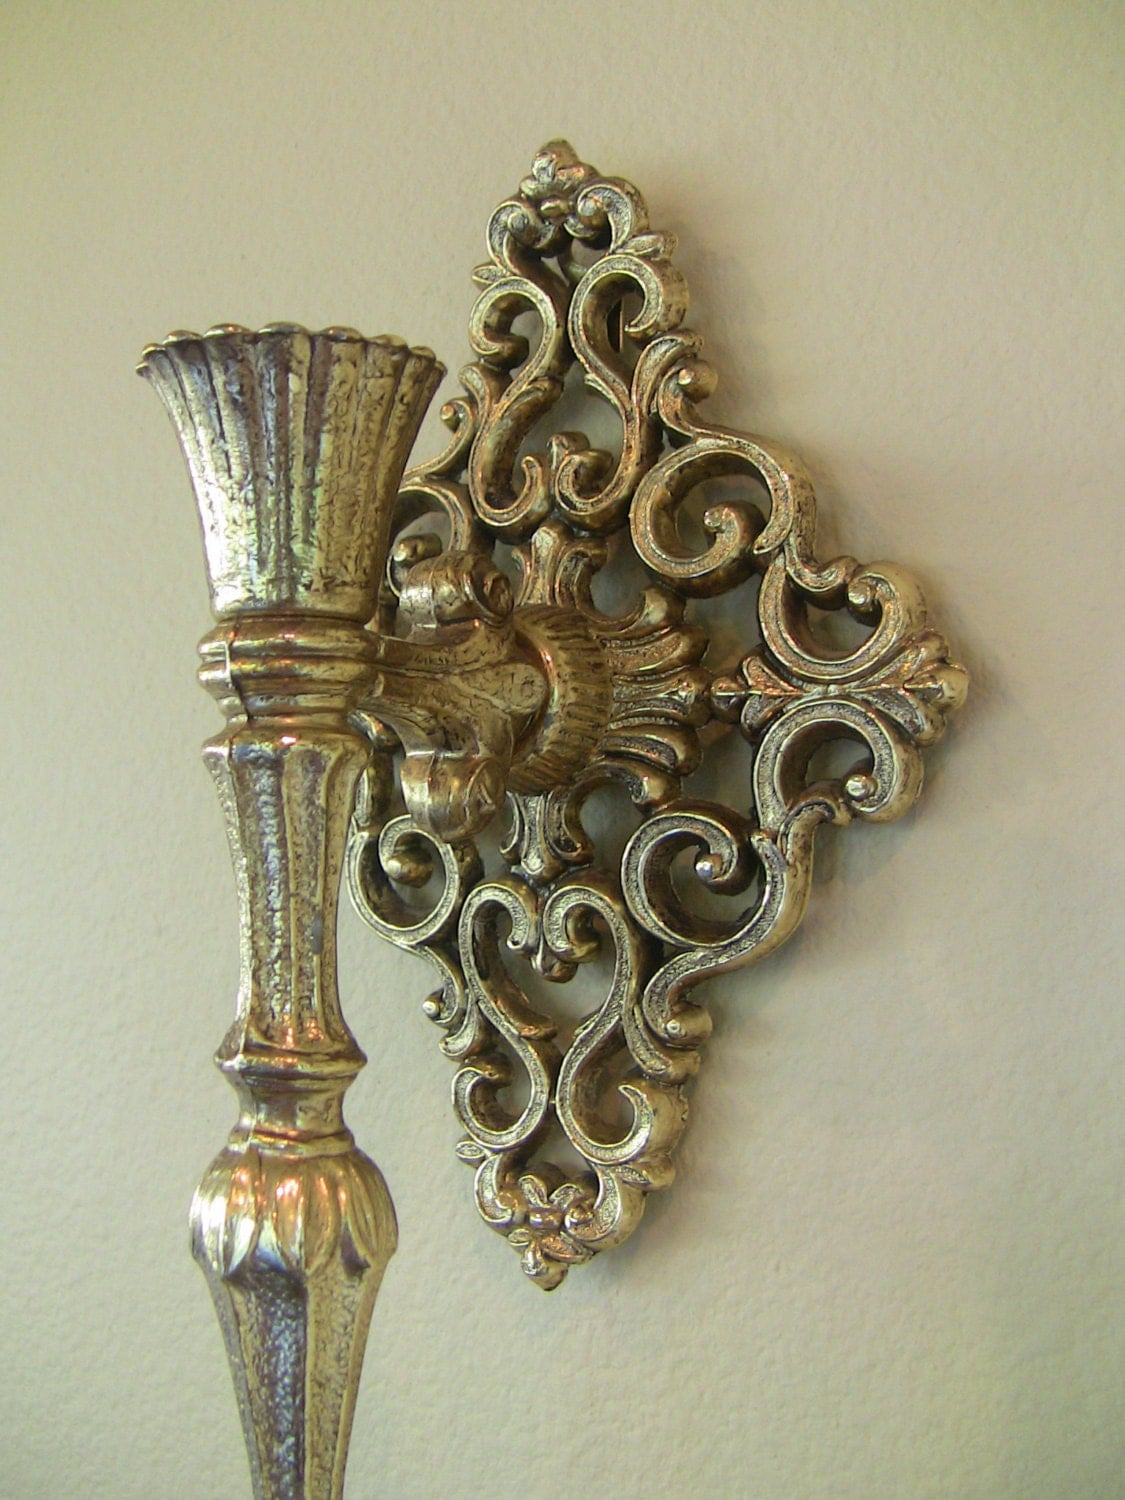 Popular items for WALL SCONCES on Etsy